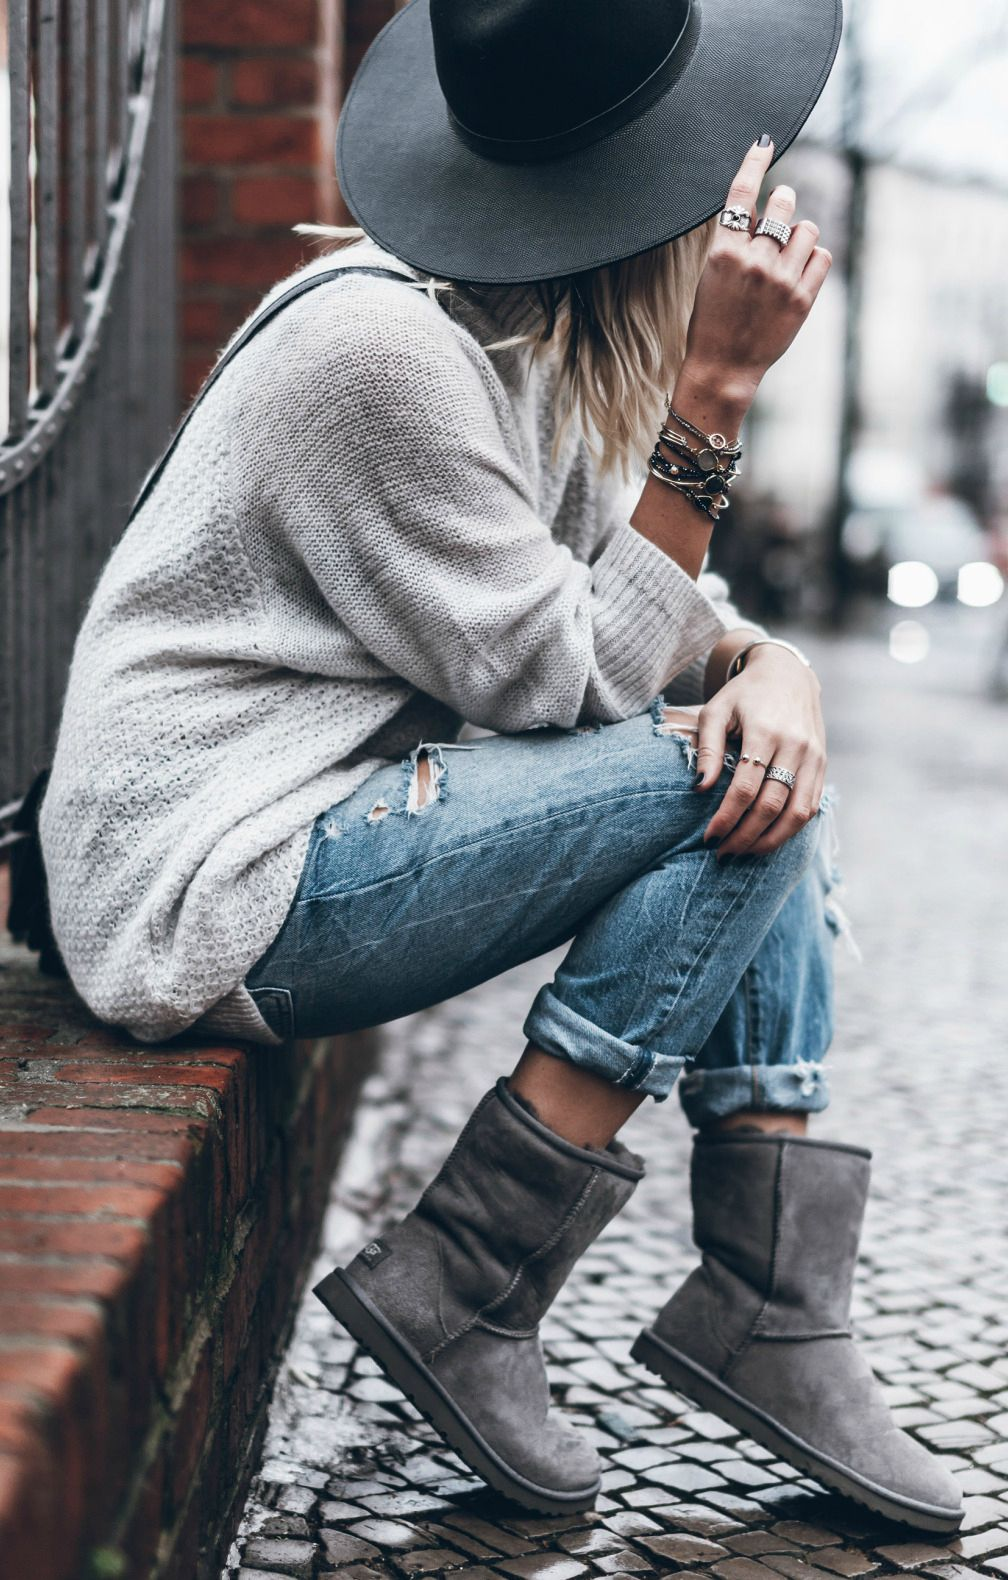 Jacqueline Mikuta+ the Ugg trend + classic pair of ankle high boots + rolled jeans + cable knit sweater + wide brimmed fedora hat + cosy + homely look + colder winter days Shoes: Ugg Australia.